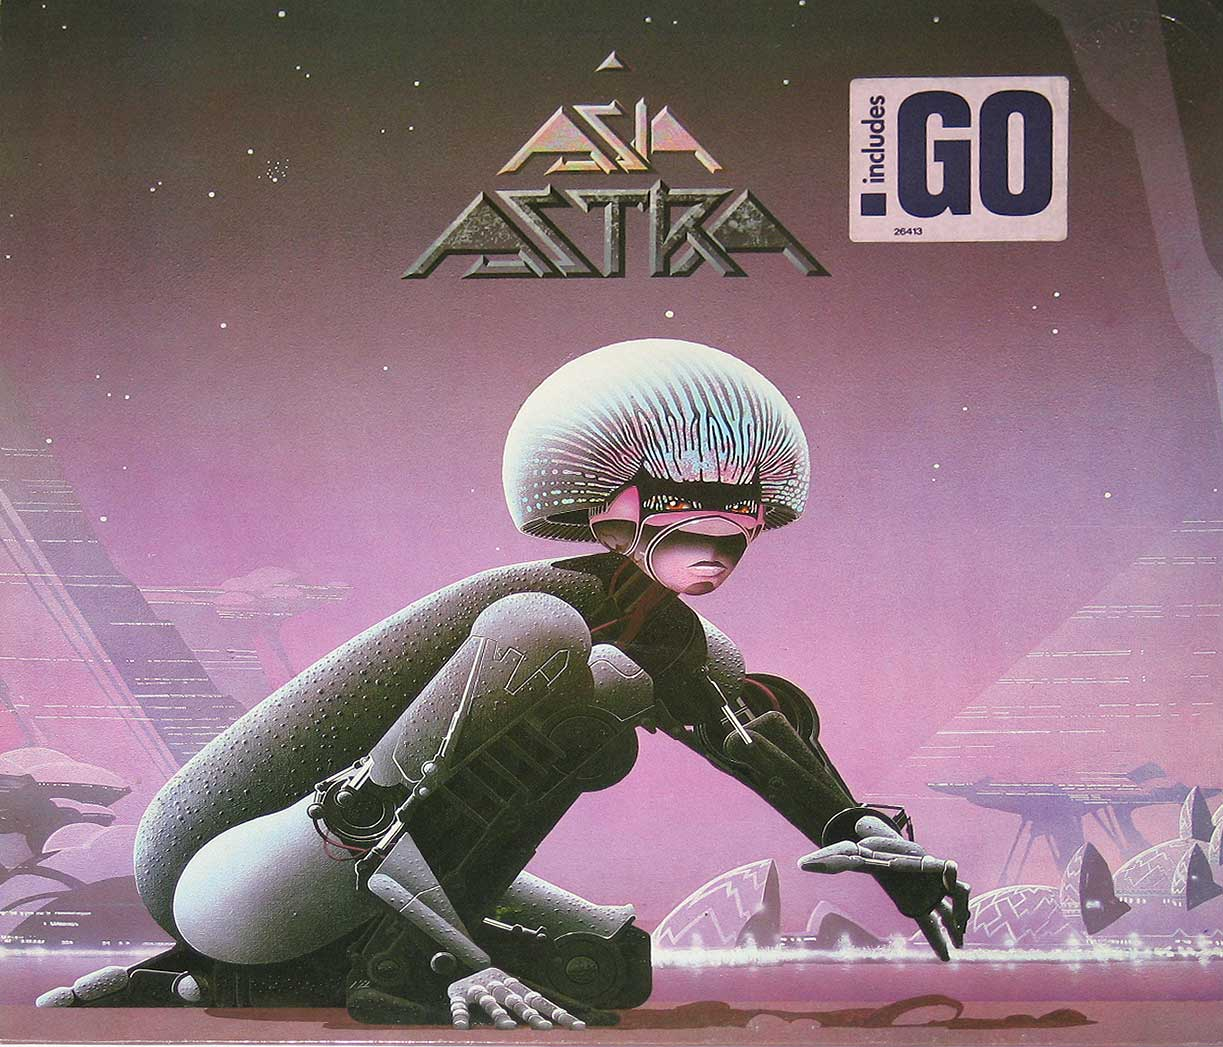 large photo of the album front cover of: ASIA - Astra